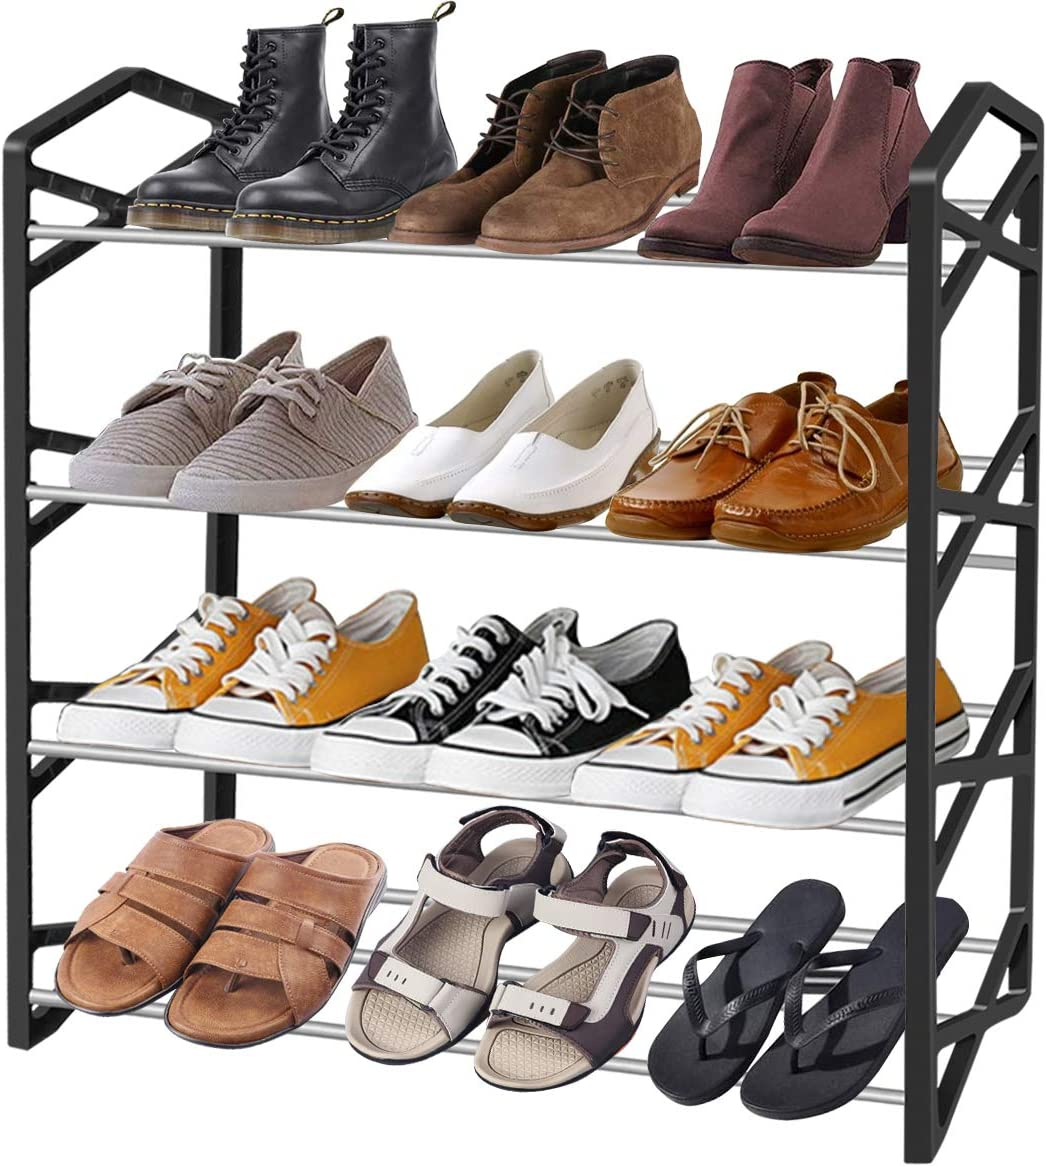 Sturdy Plastic Stainless Steel Assembly 4-Tier Shoe Rack for Home Wall Entrance, Bedroom, Closet, Dormitory Room Closet Storage Rack Shoe Rack for Women, Men and Kids